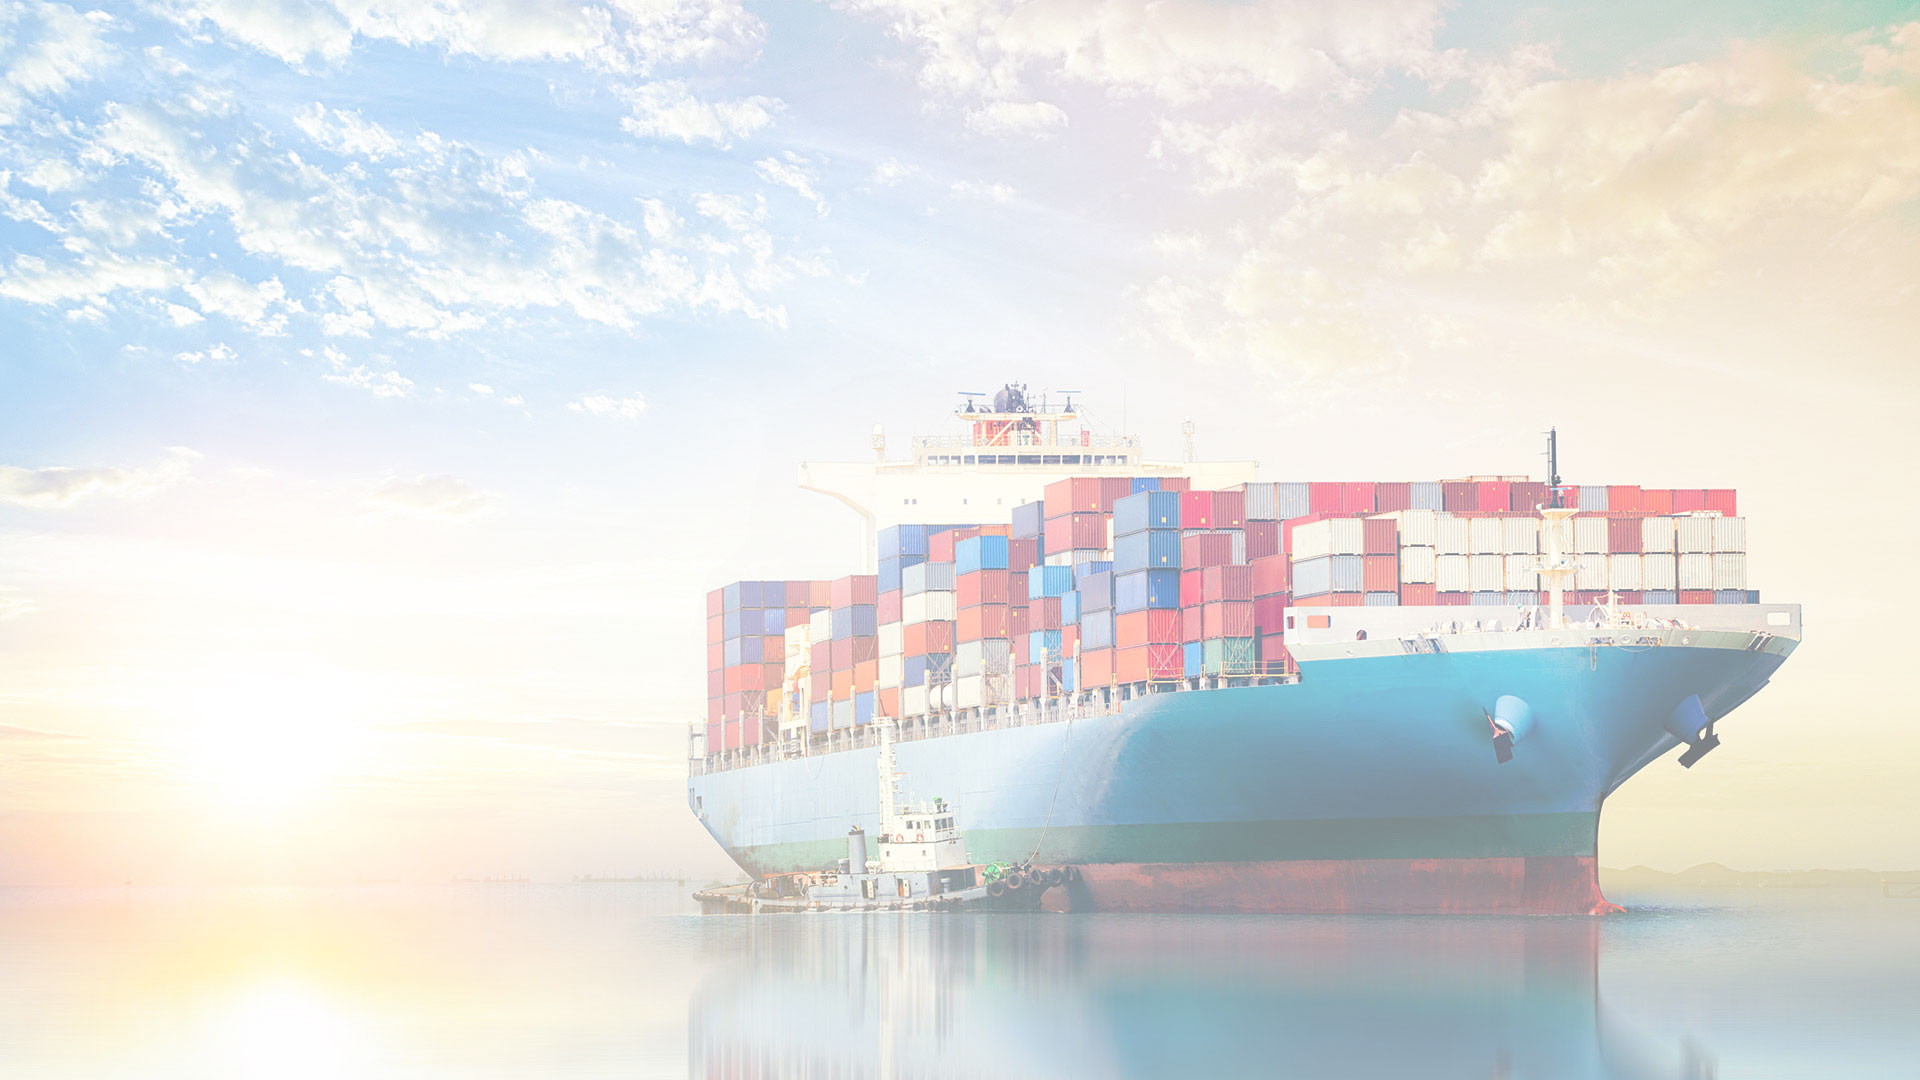 e-Navigation solutions for commercial shipping companies